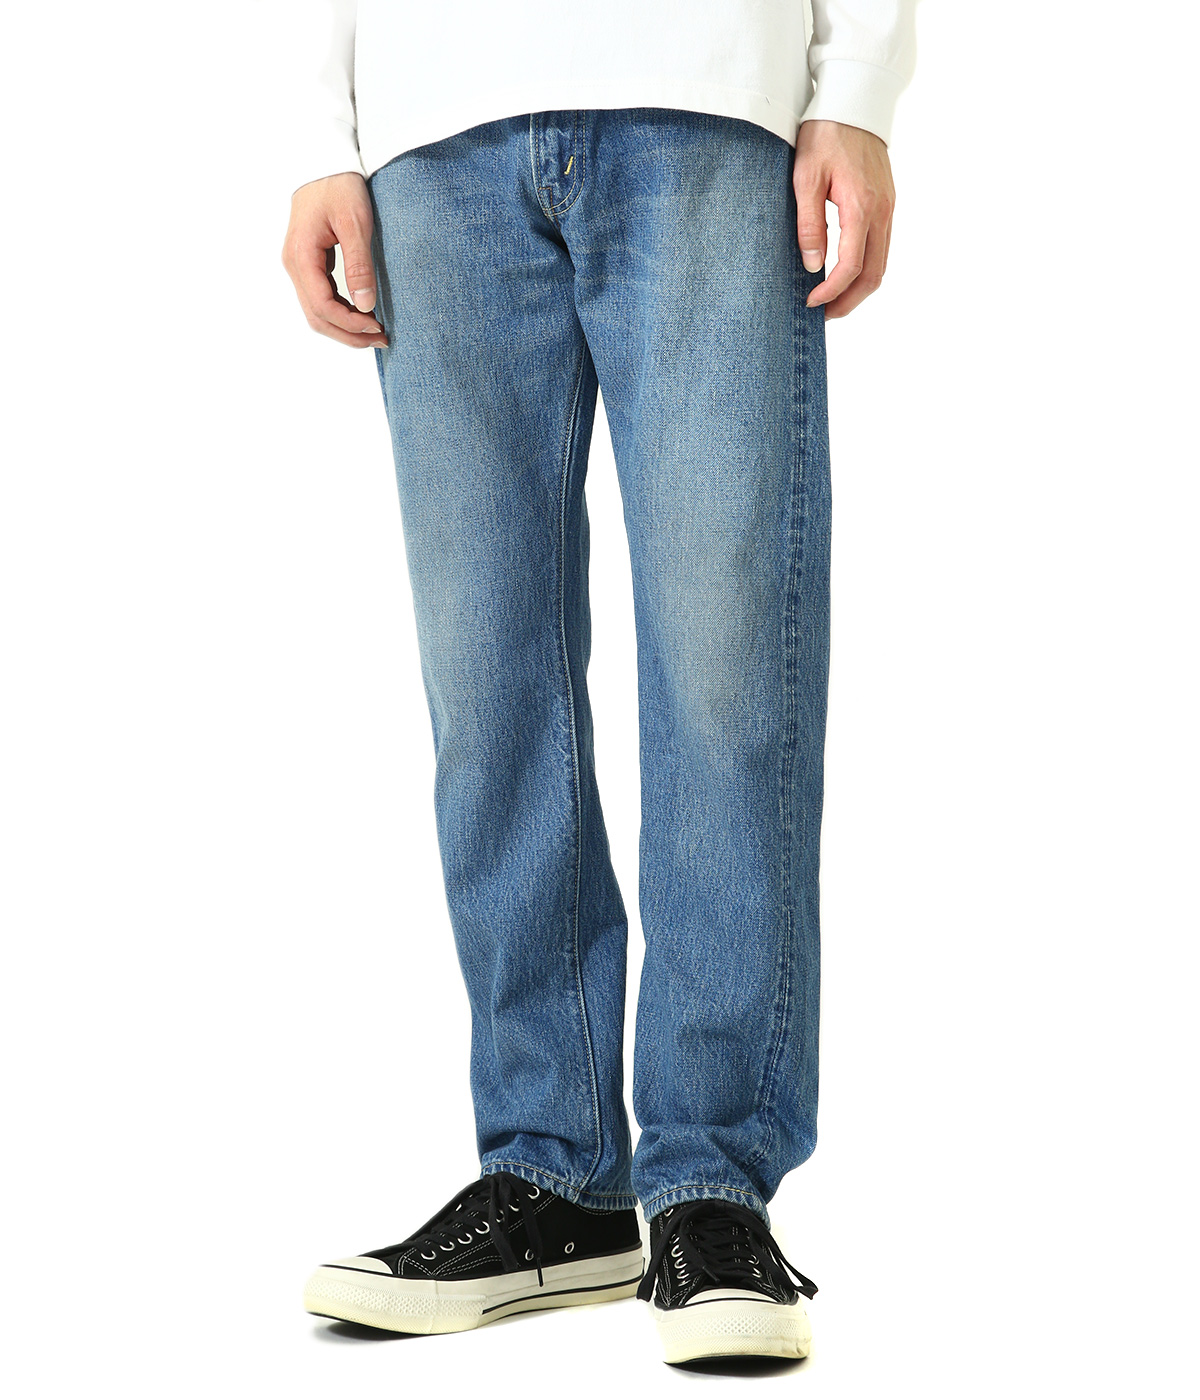 MEN'S IVY FIT JEANS 2YEAR WASH